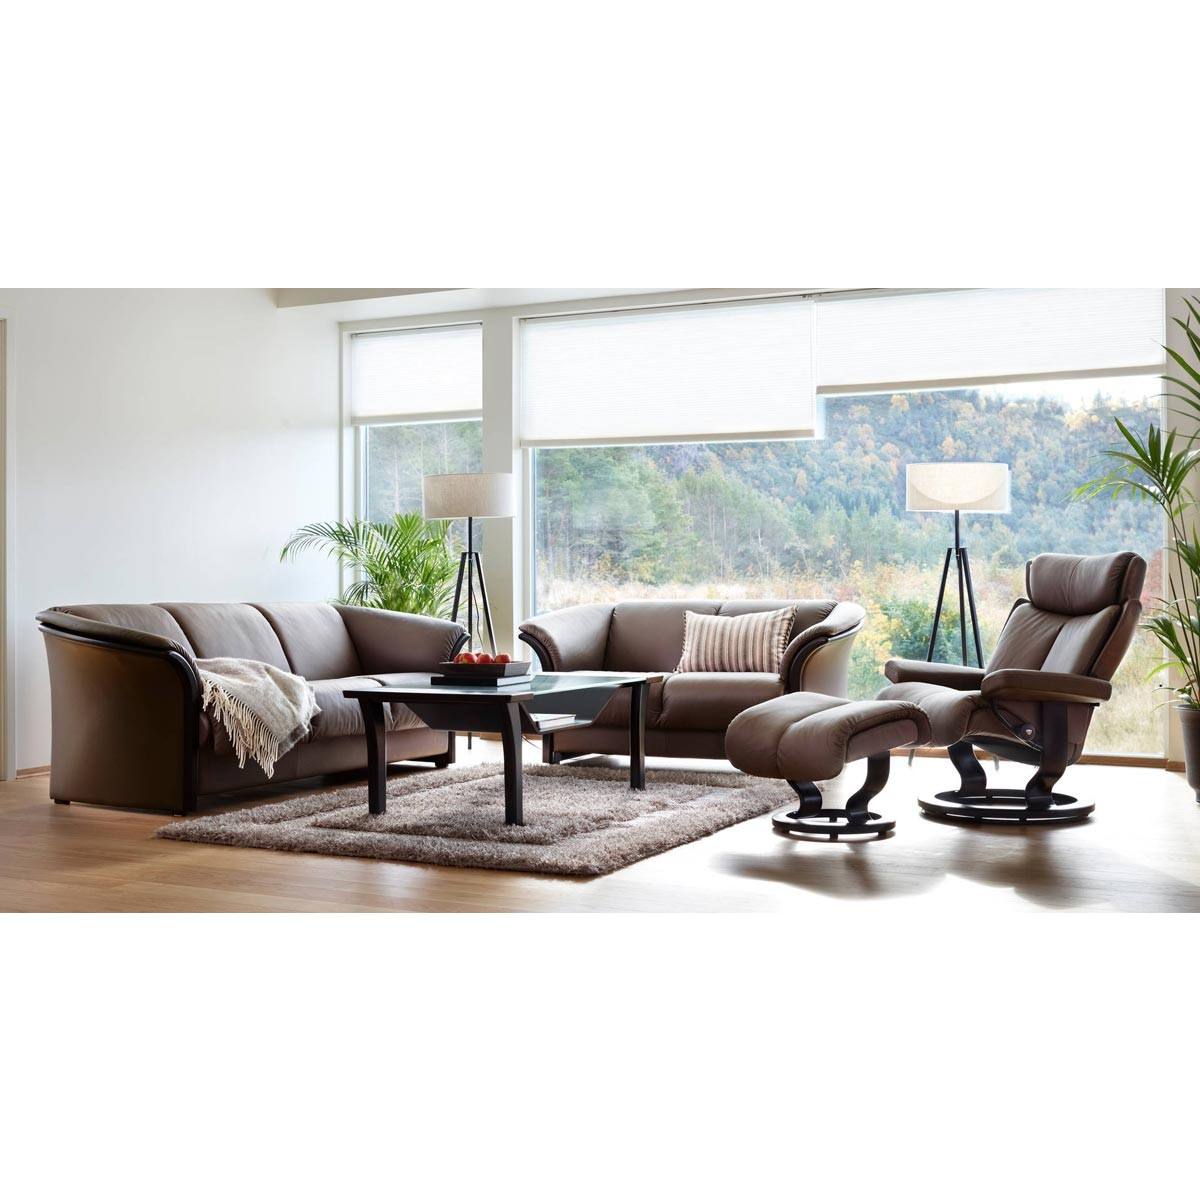 Sofa Fra Ekornes Ekornes Manhattan Sofa From 2 595 00 By Stressless